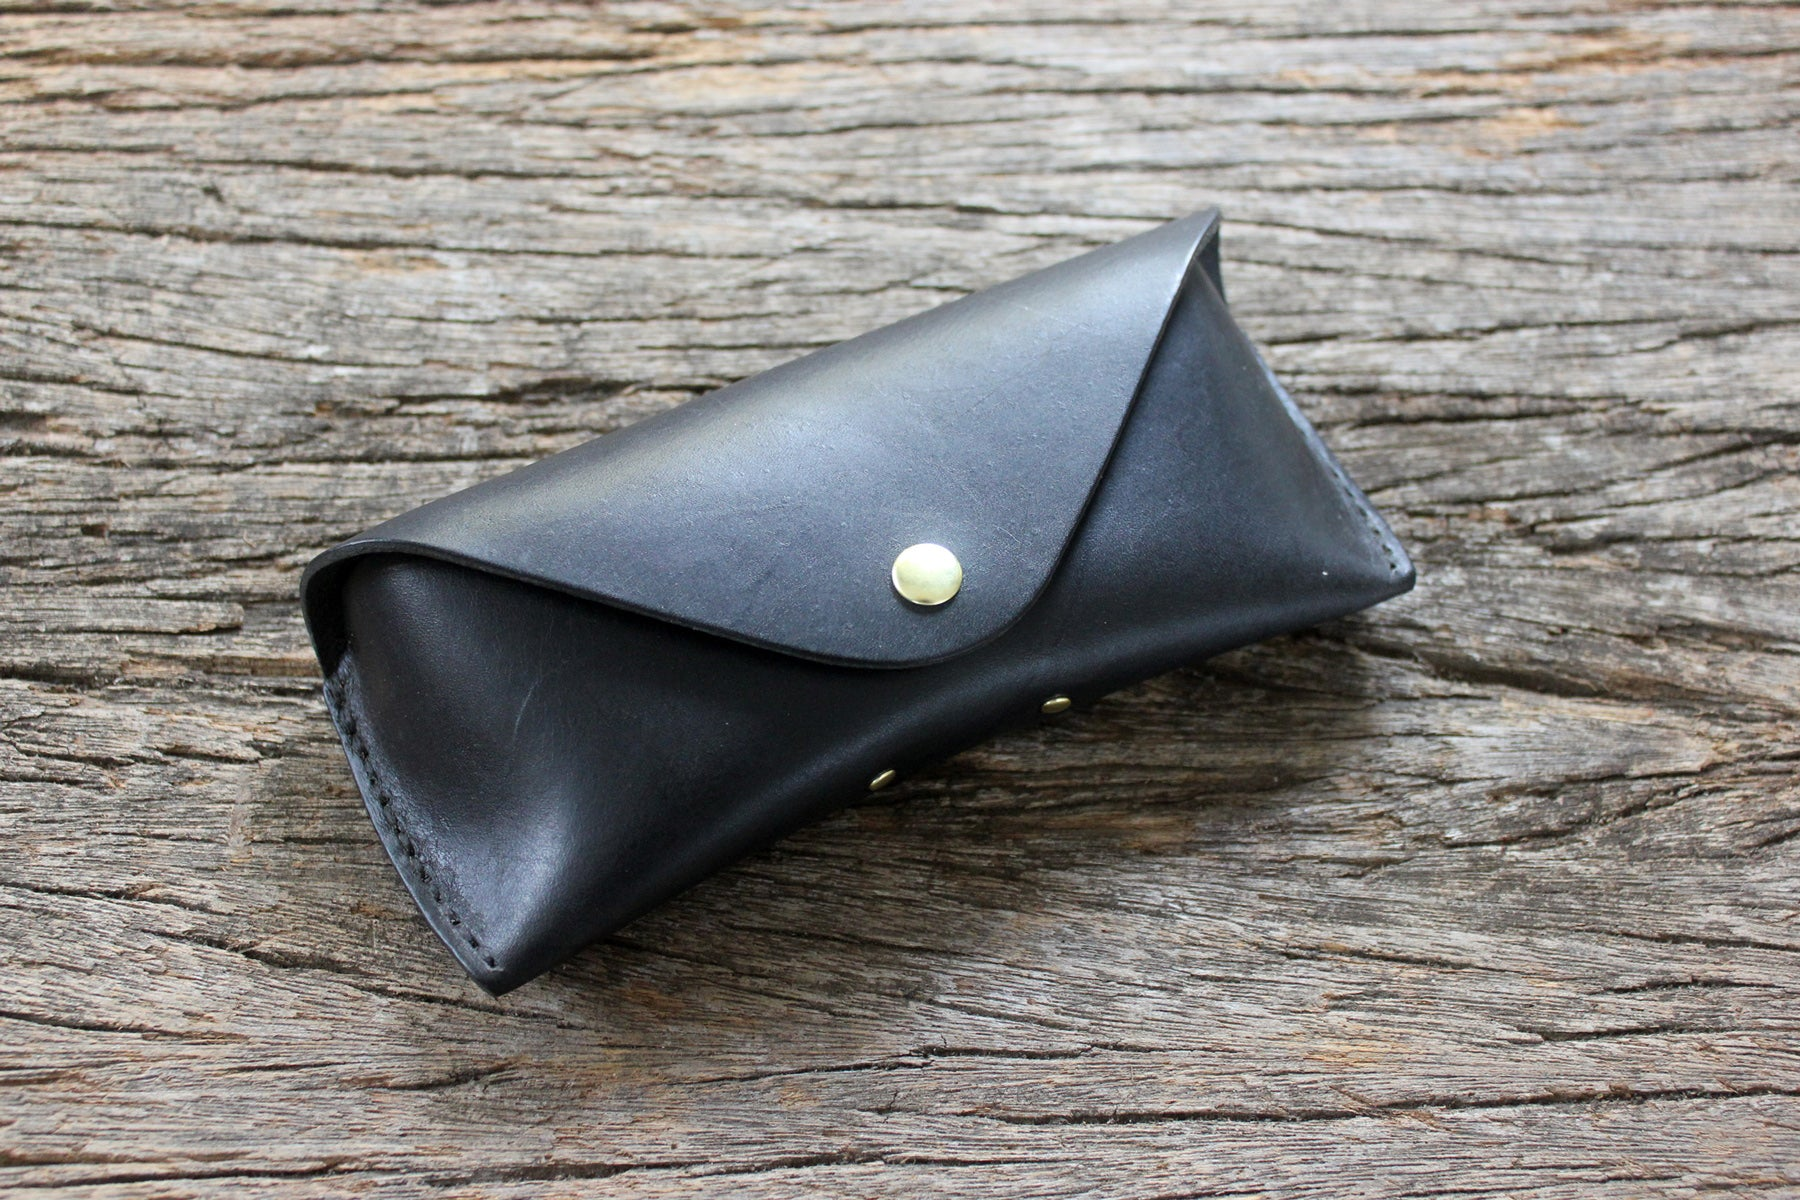 The Ray Eyewear Case